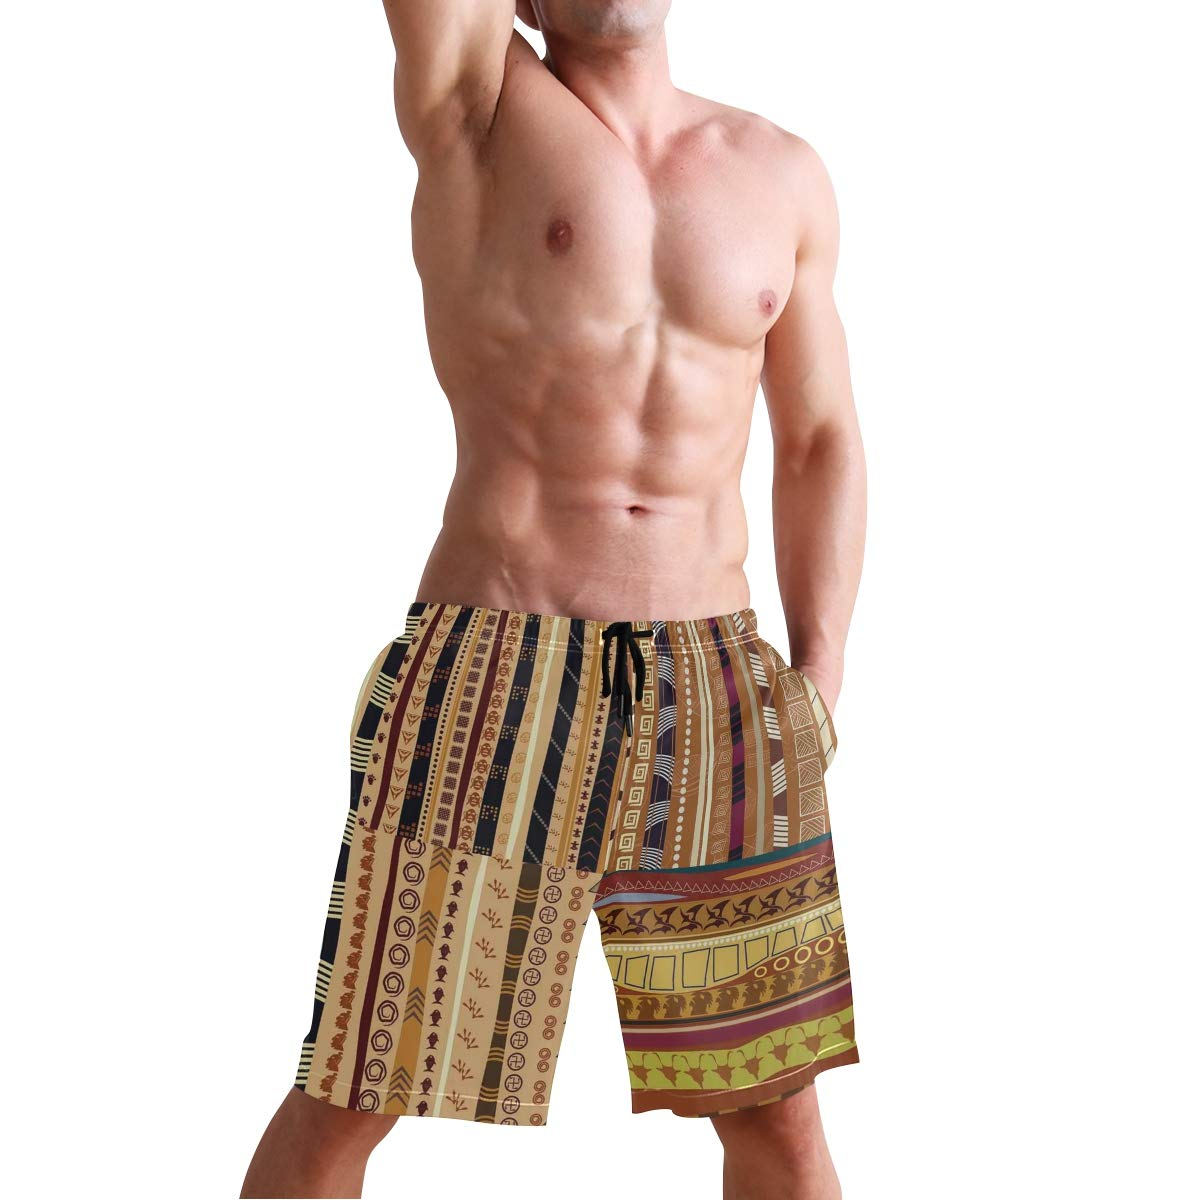 KVMV African Exotic Lizards and Chameleons Leaping Nature an Quick Dry Beach Shorts